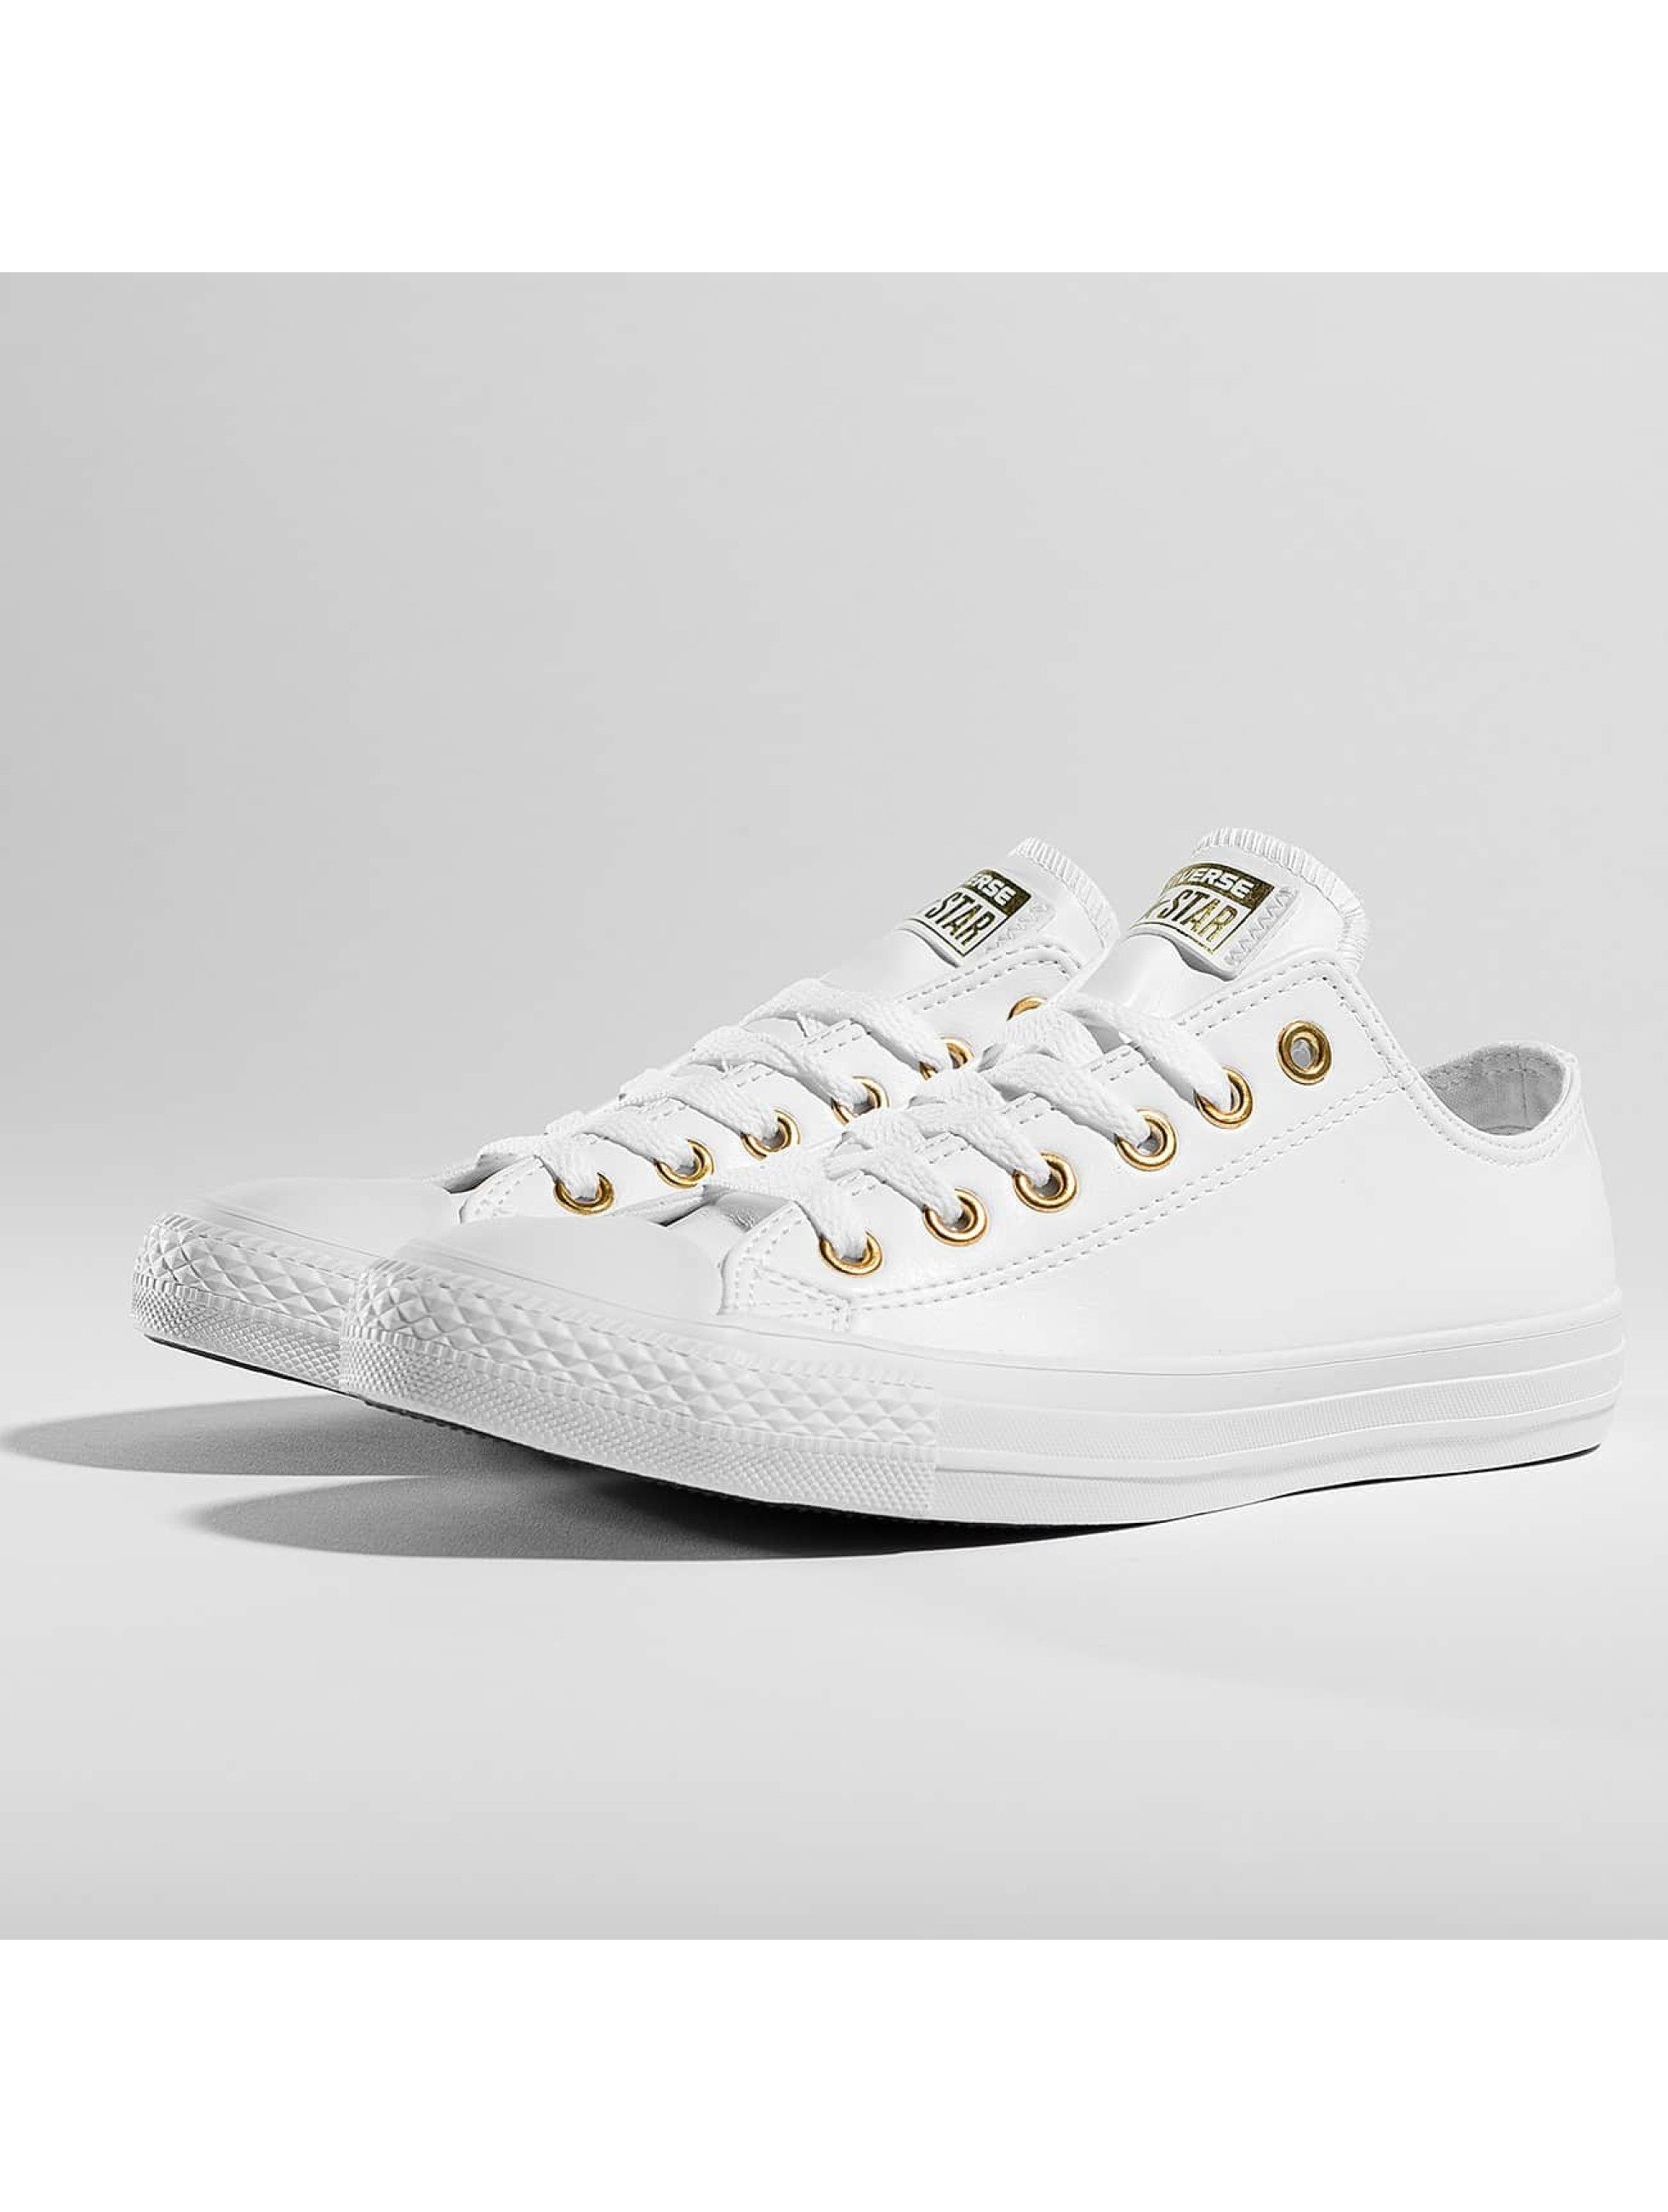 Converse Chuck Taylor All Star Ox Sneakers White/Goldcolored/White Sale Angebote Reuthen